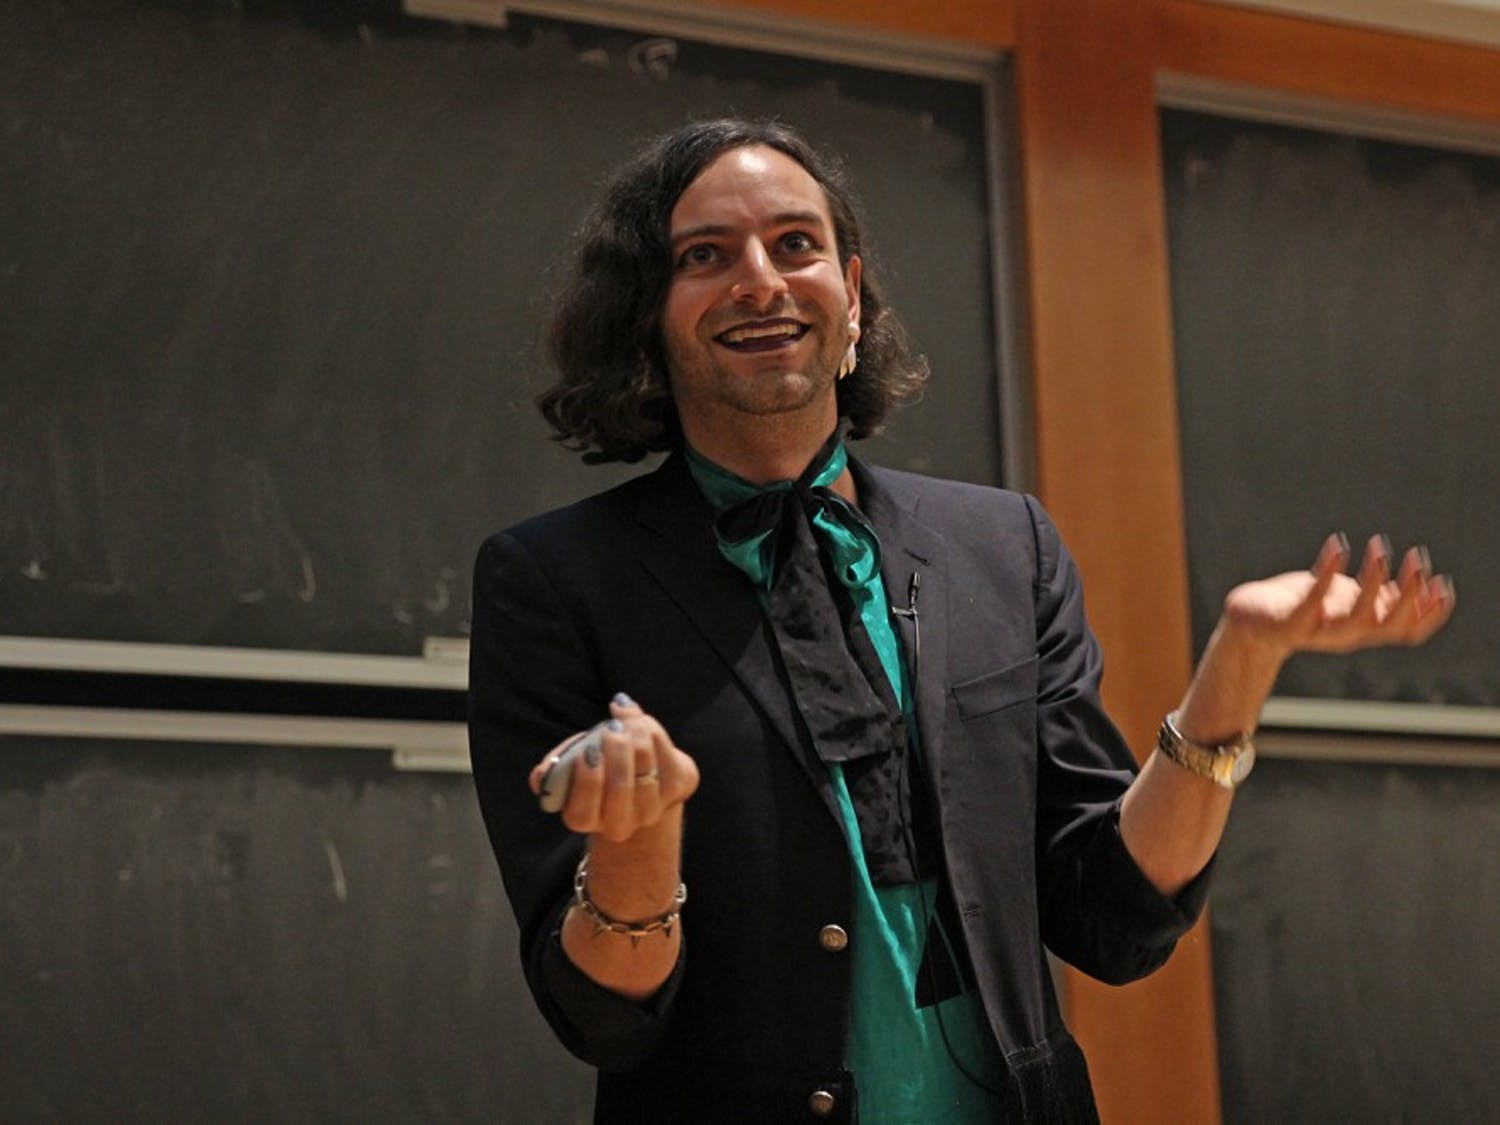 UNC SAGA held a talk with gender activist Jacob Tobia in Chapman Hall on Thursday night.